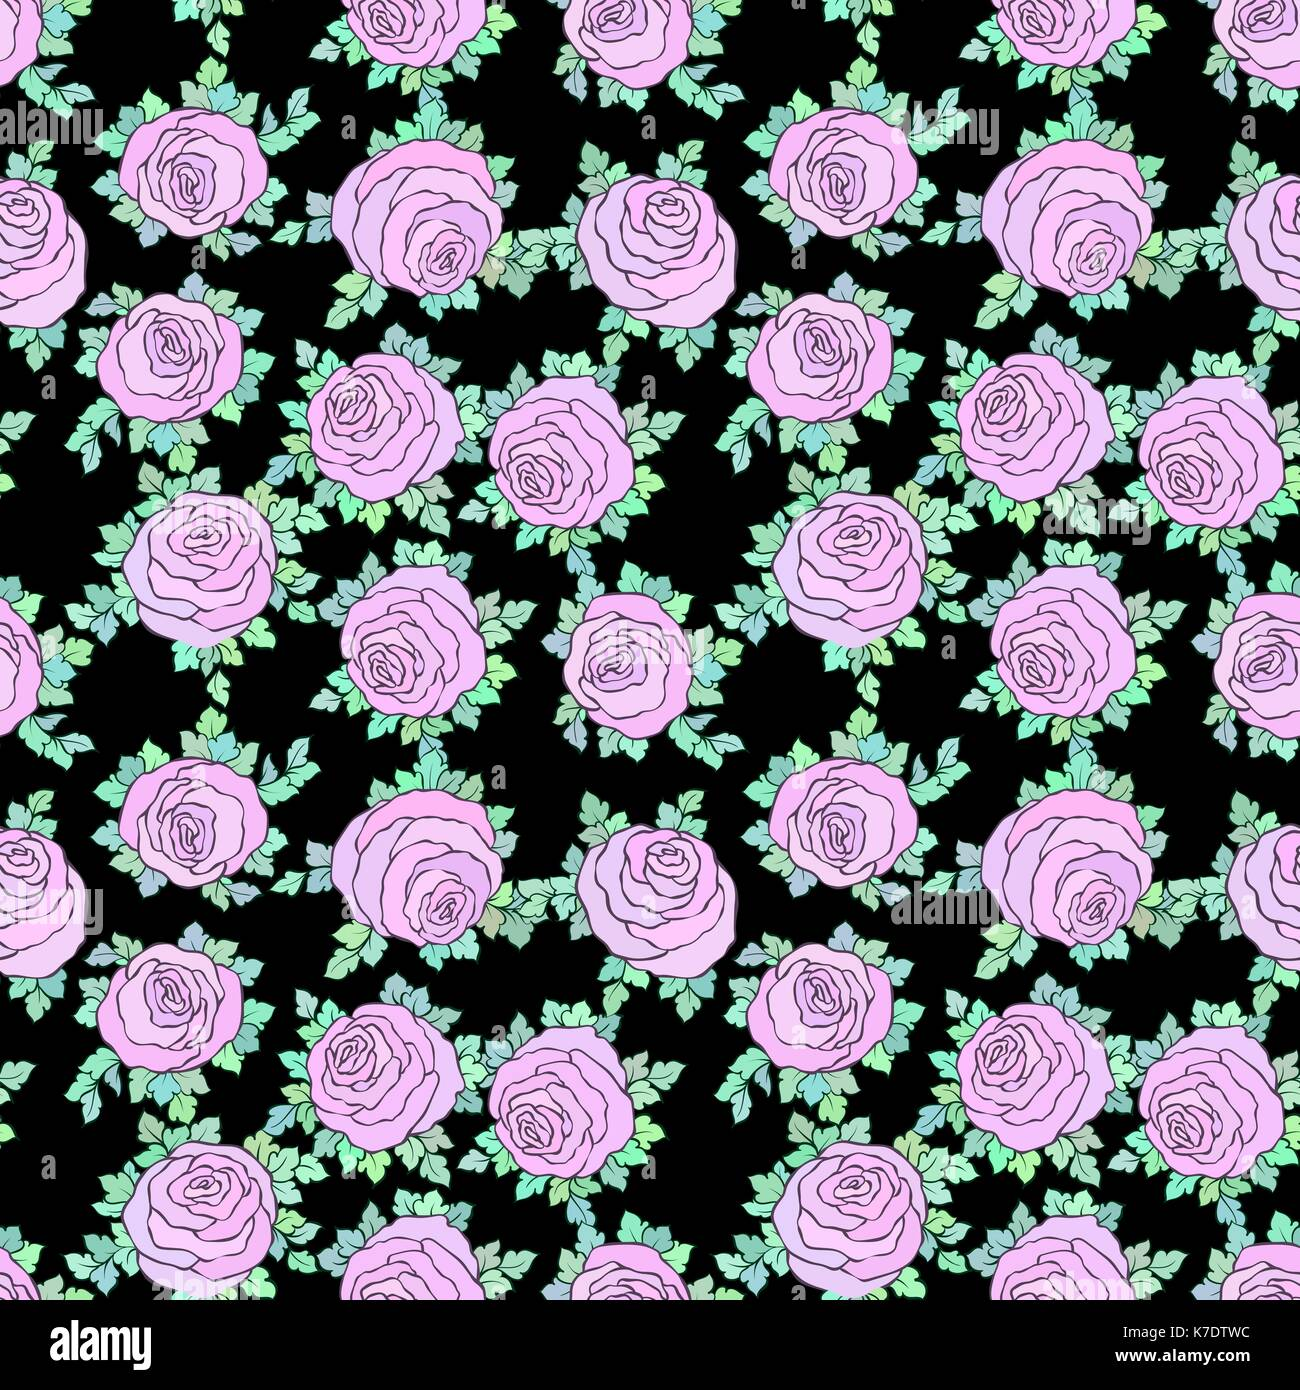 Floral Decorative Bright Wallpaper With Cute Roses Seamless Pattern Stock Vector Image Art Alamy